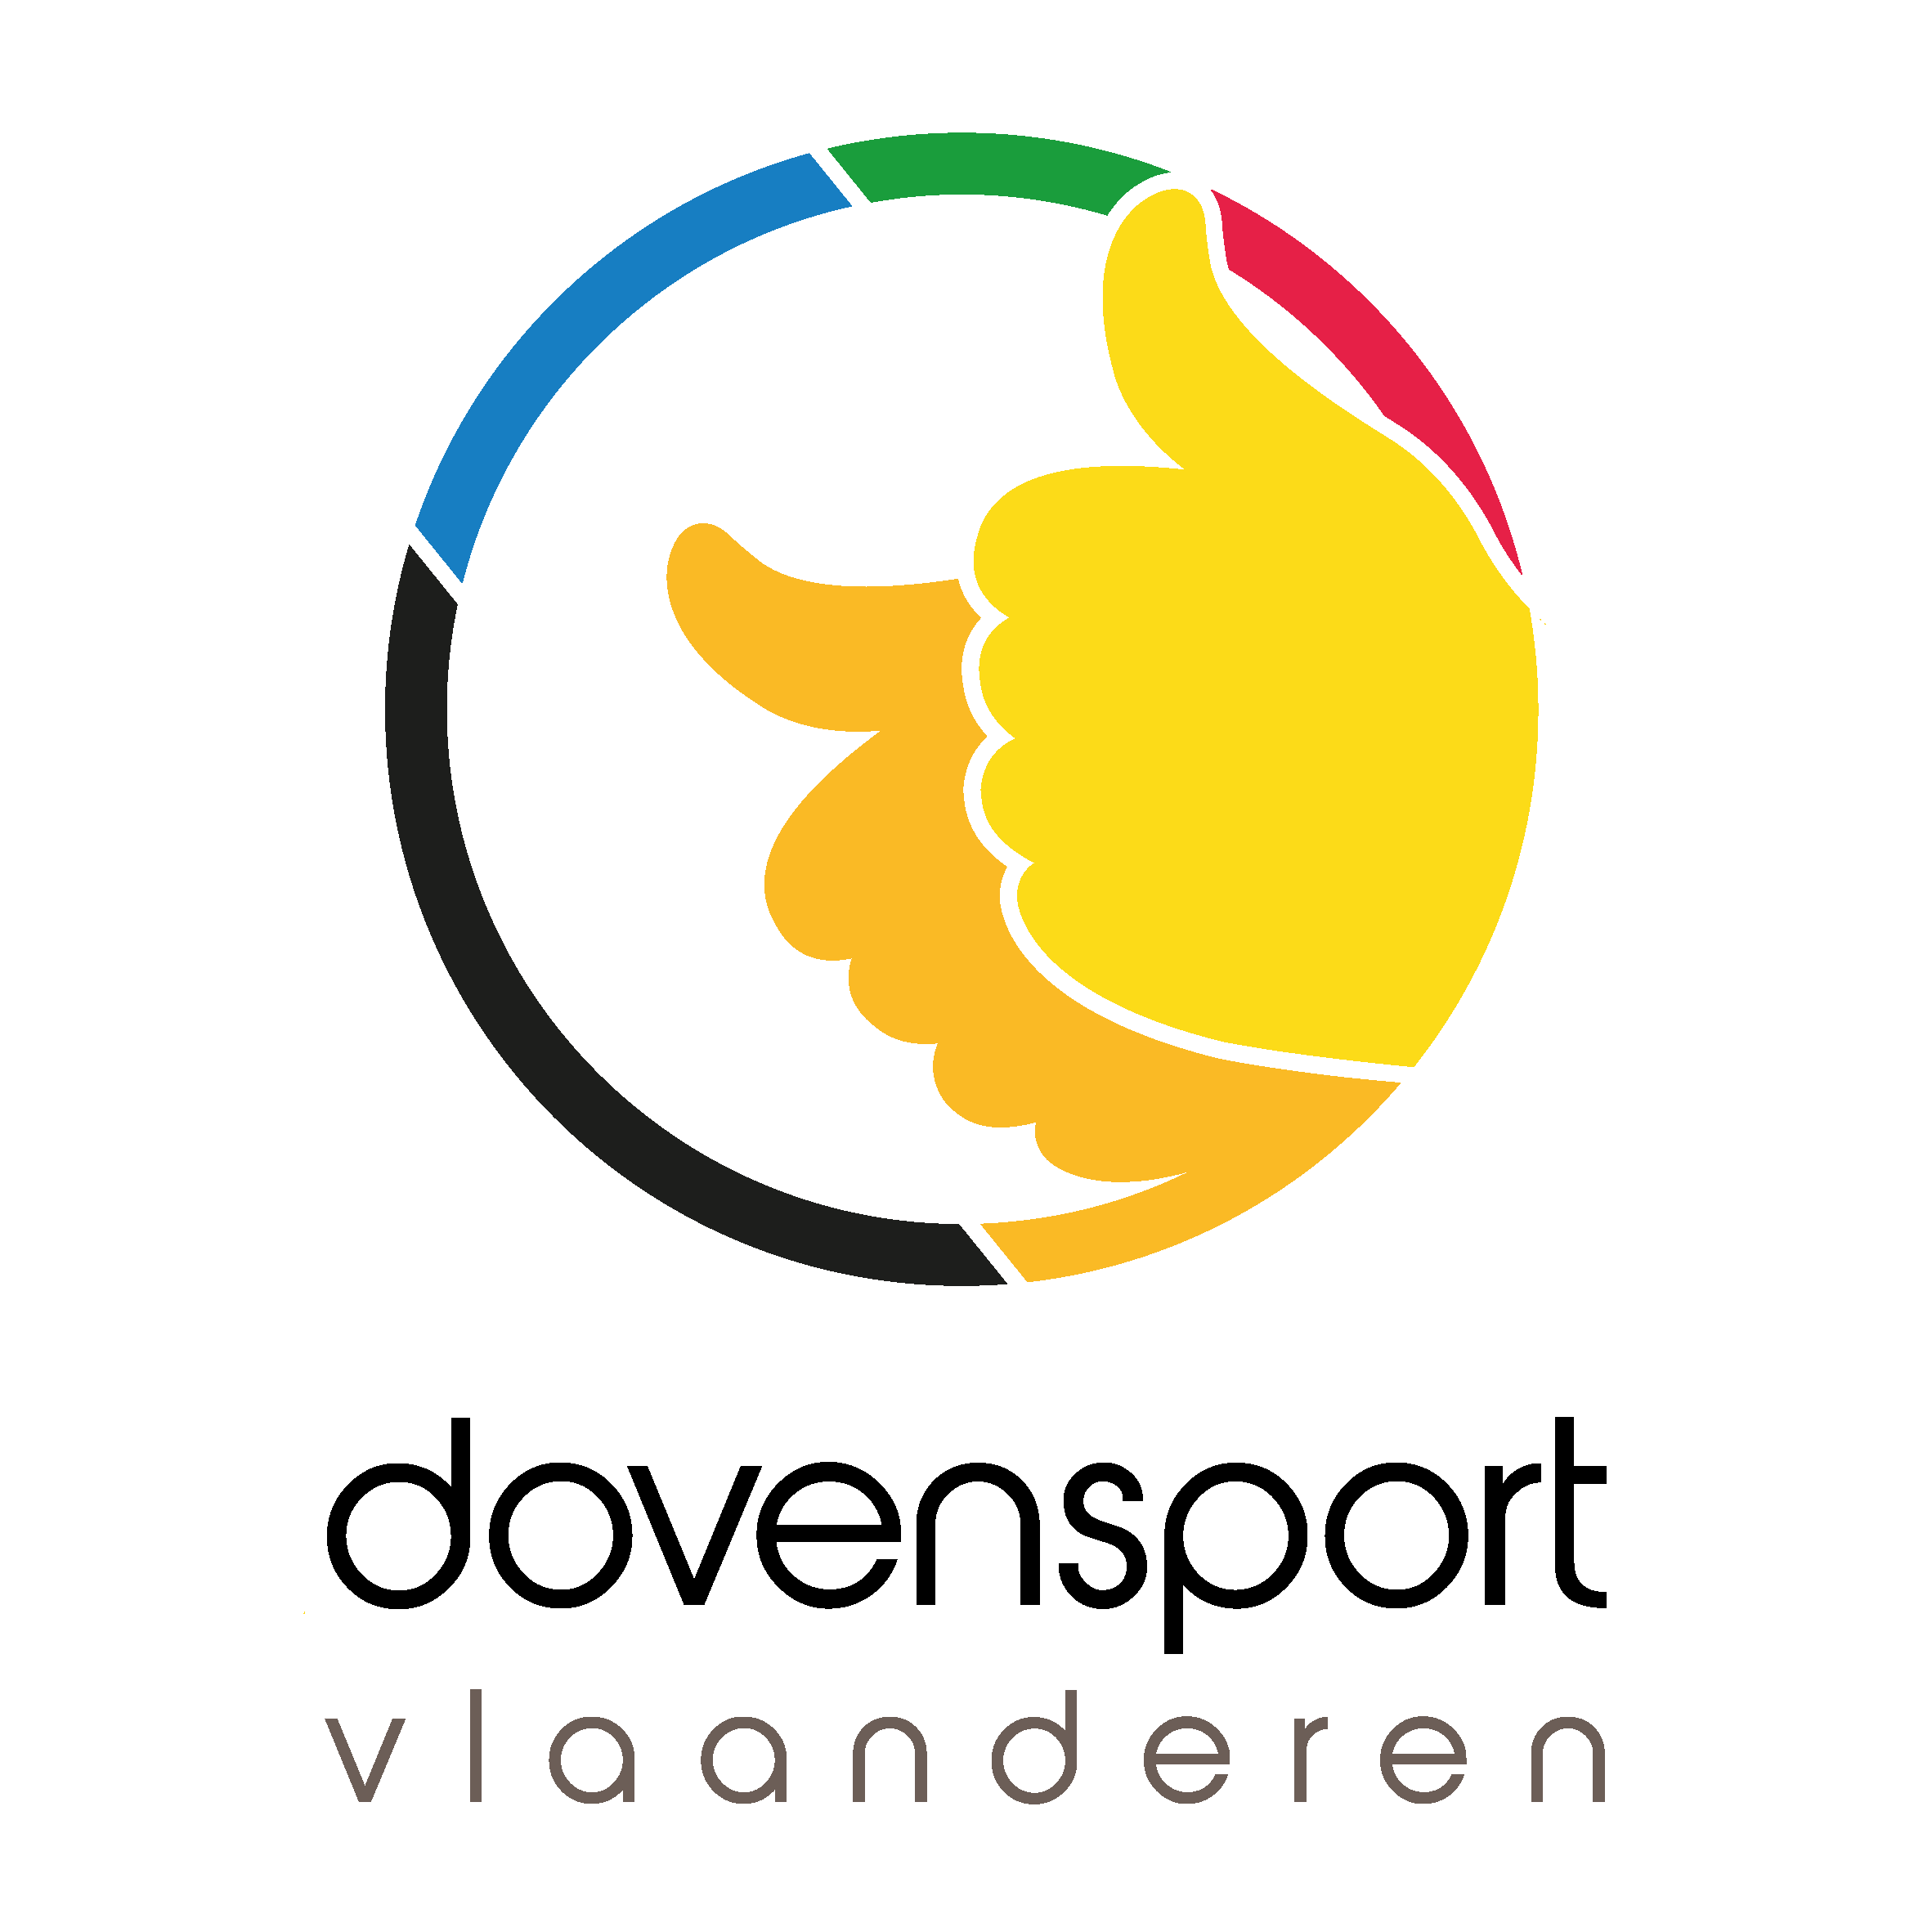 DovenSport Vlaanderen